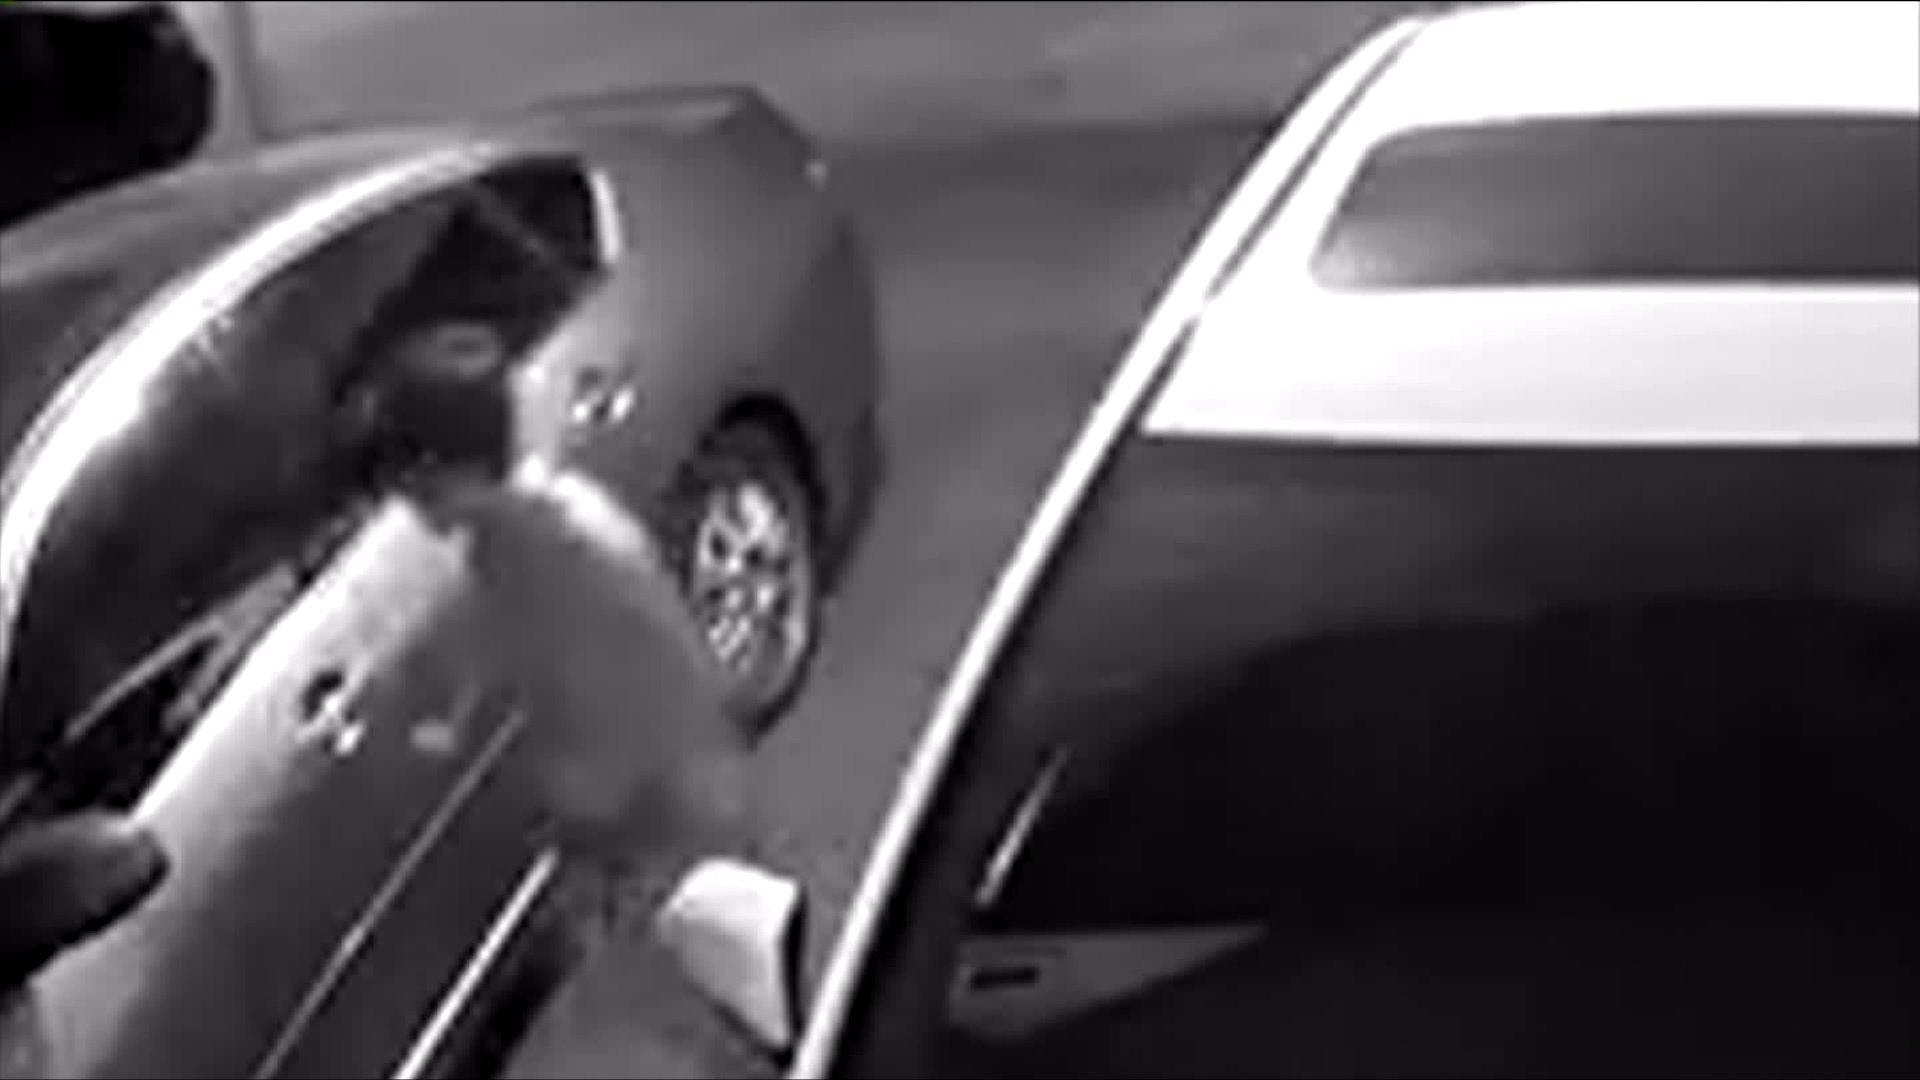 Video Appears to Show Child Breaking Into Cars in California